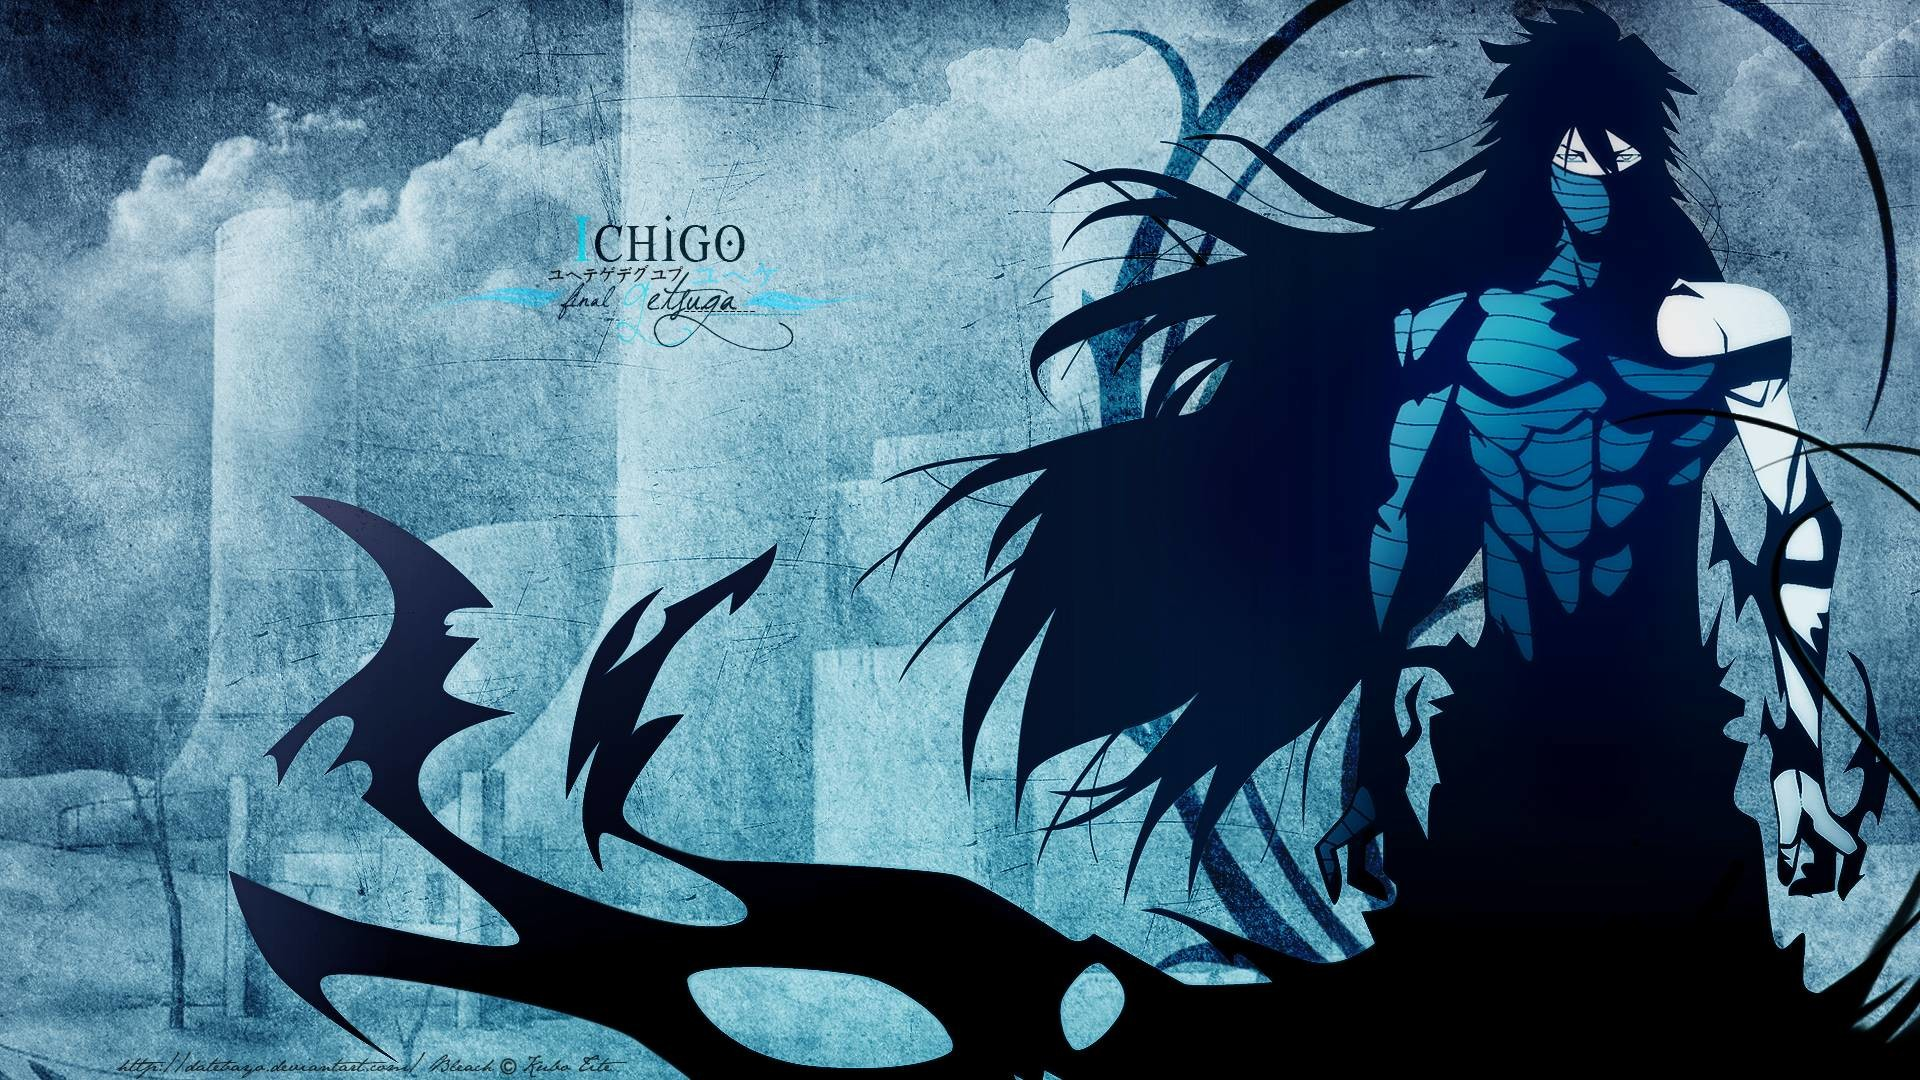 Do you want to use windows live wallpapers? Bleach Anime Wallpaper (71+ images)